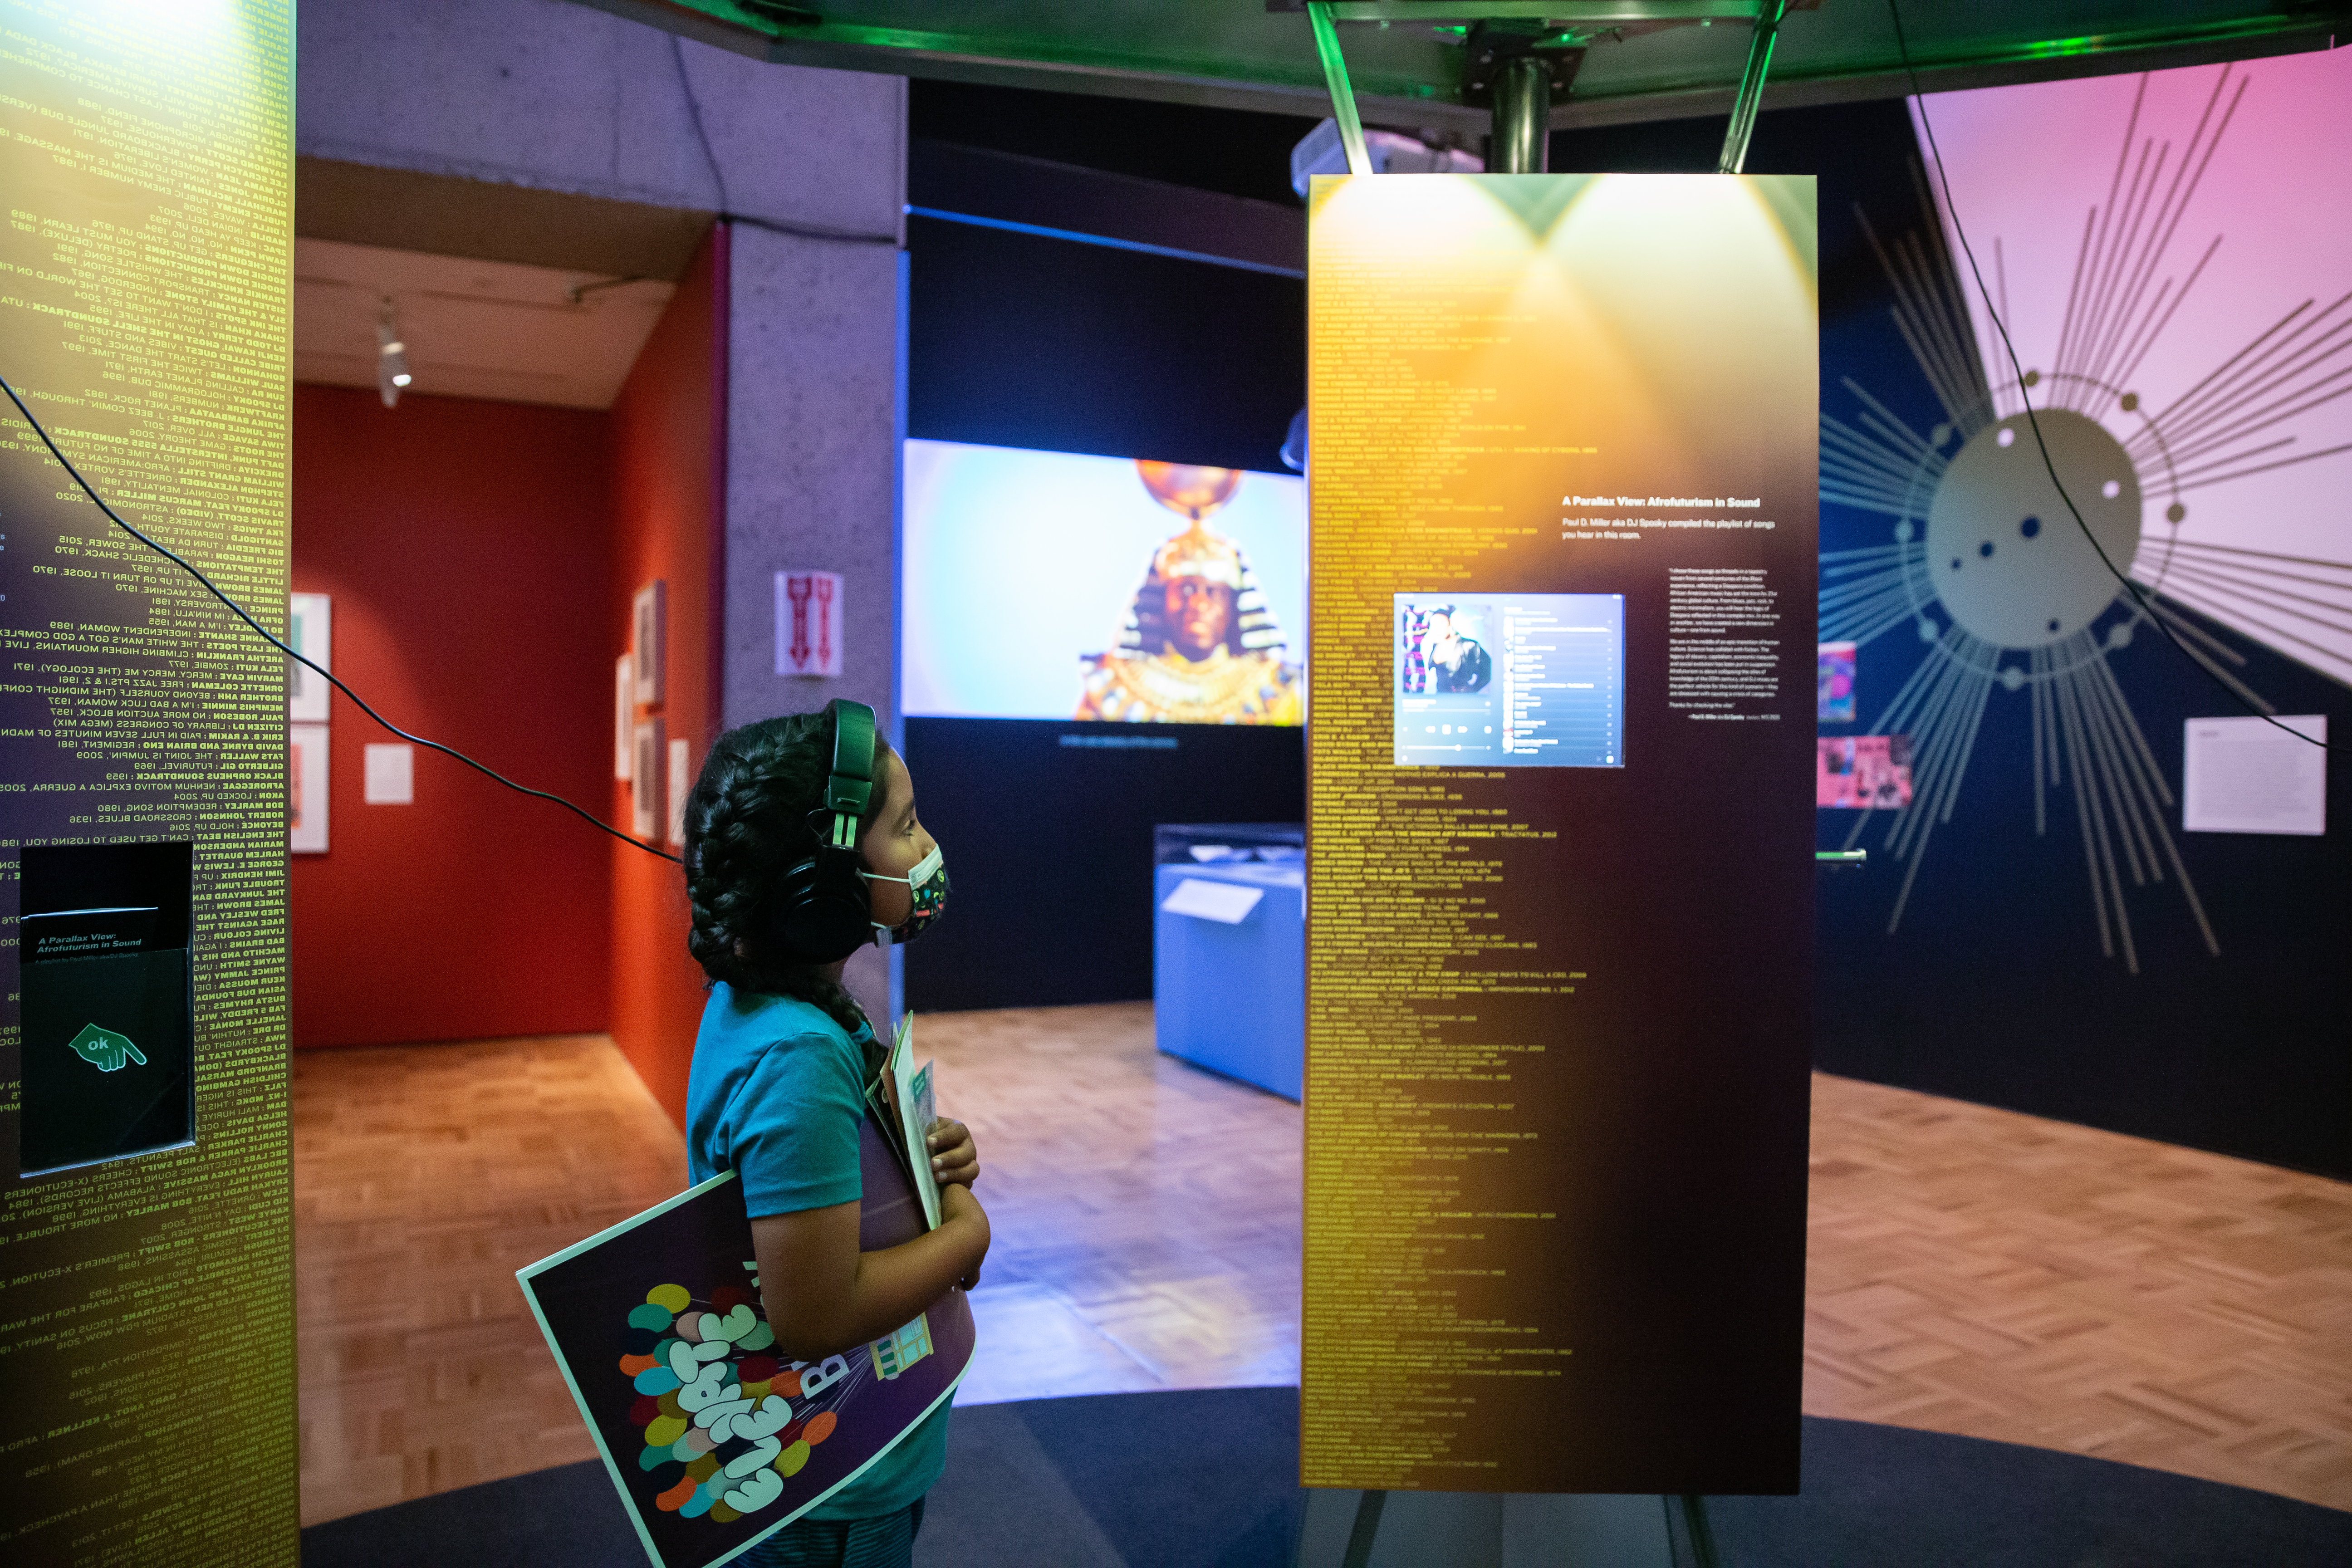 A young girl listens to a playlist by DJ Spooky inside the mothership.